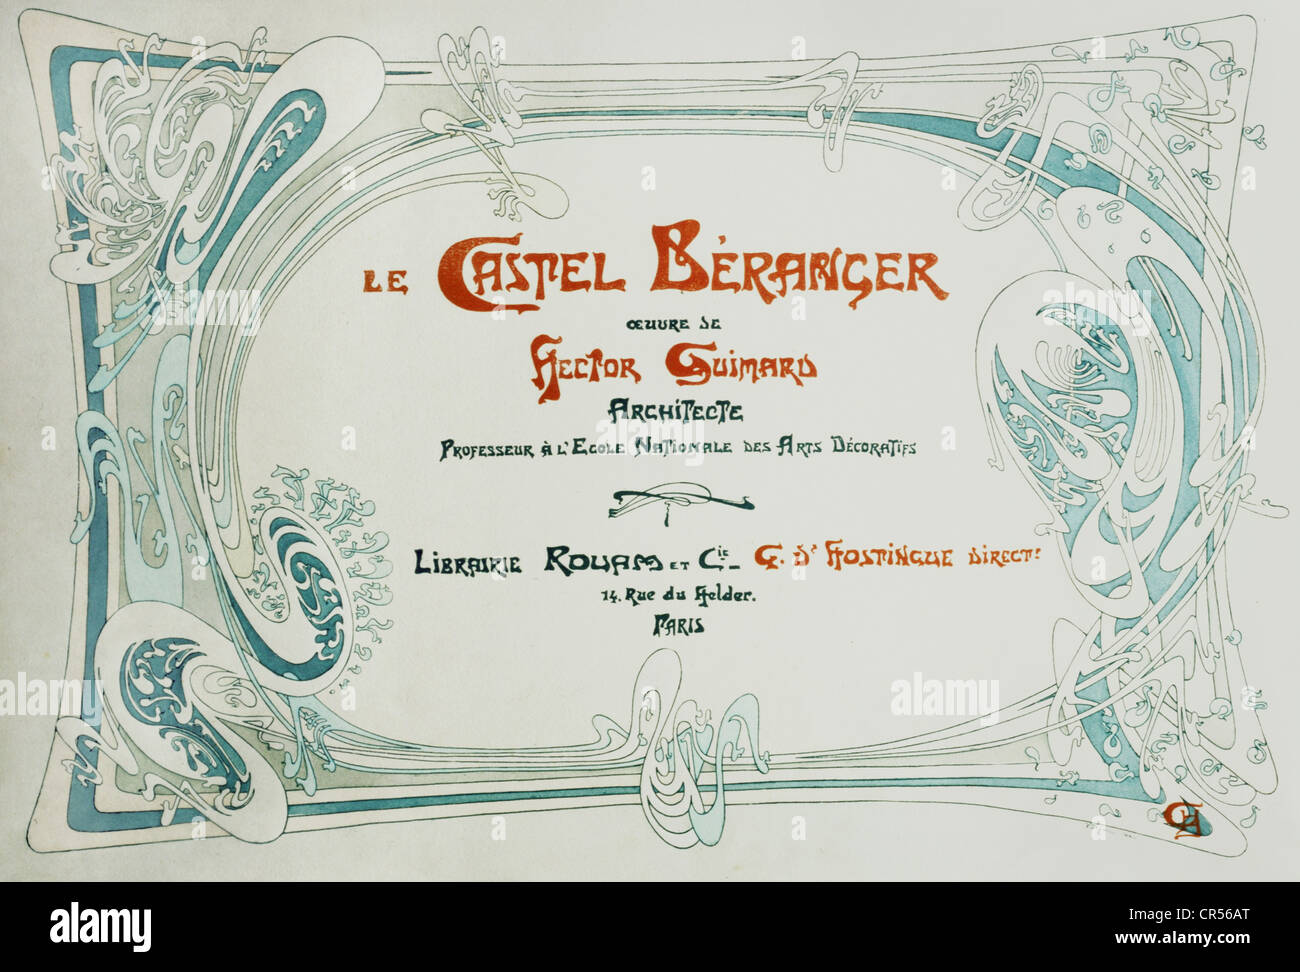 Guimard, Hector, 10.3.1867 - 20.5.1942, French architect, advertising for his building Le Castel Beranger, Paris, - Stock Image